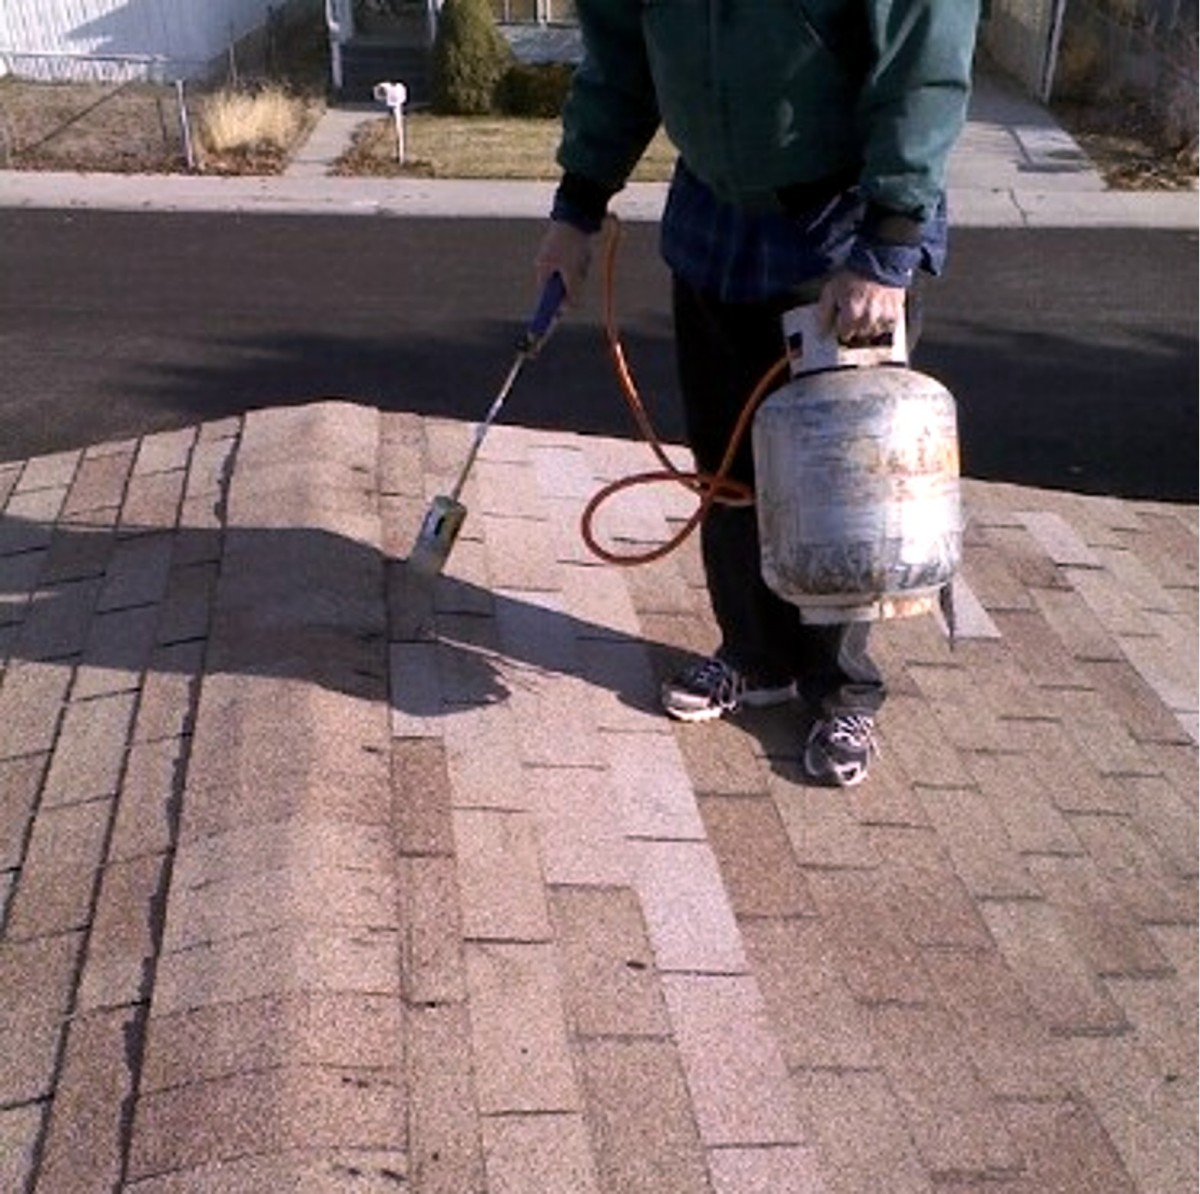 Heating the finished roof repair job with a weed burner to help quick sealing.